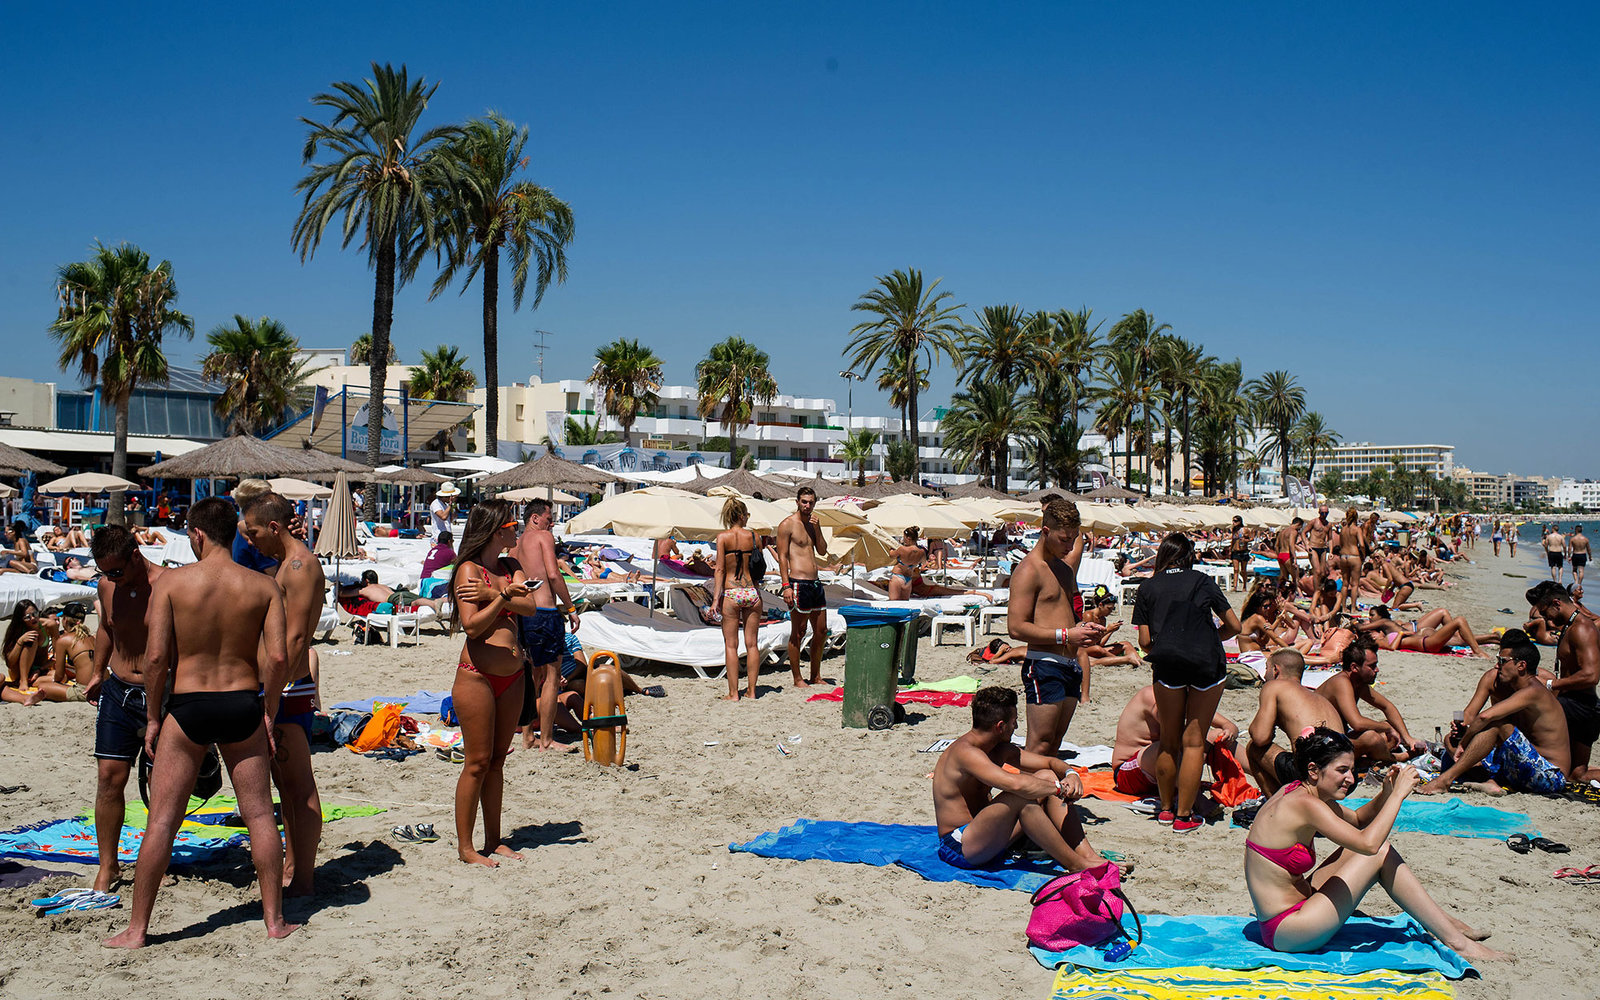 IBIZA, SPAIN - AUGUST 21:  People sunbathe at Platja d'en Bossa beach on August 21, 2013 in Ibiza, Spain. The small island of Ibiza lies within the Balearics islands, off the coast of Spain. For many years Ibiza has had a reputation as a party destination